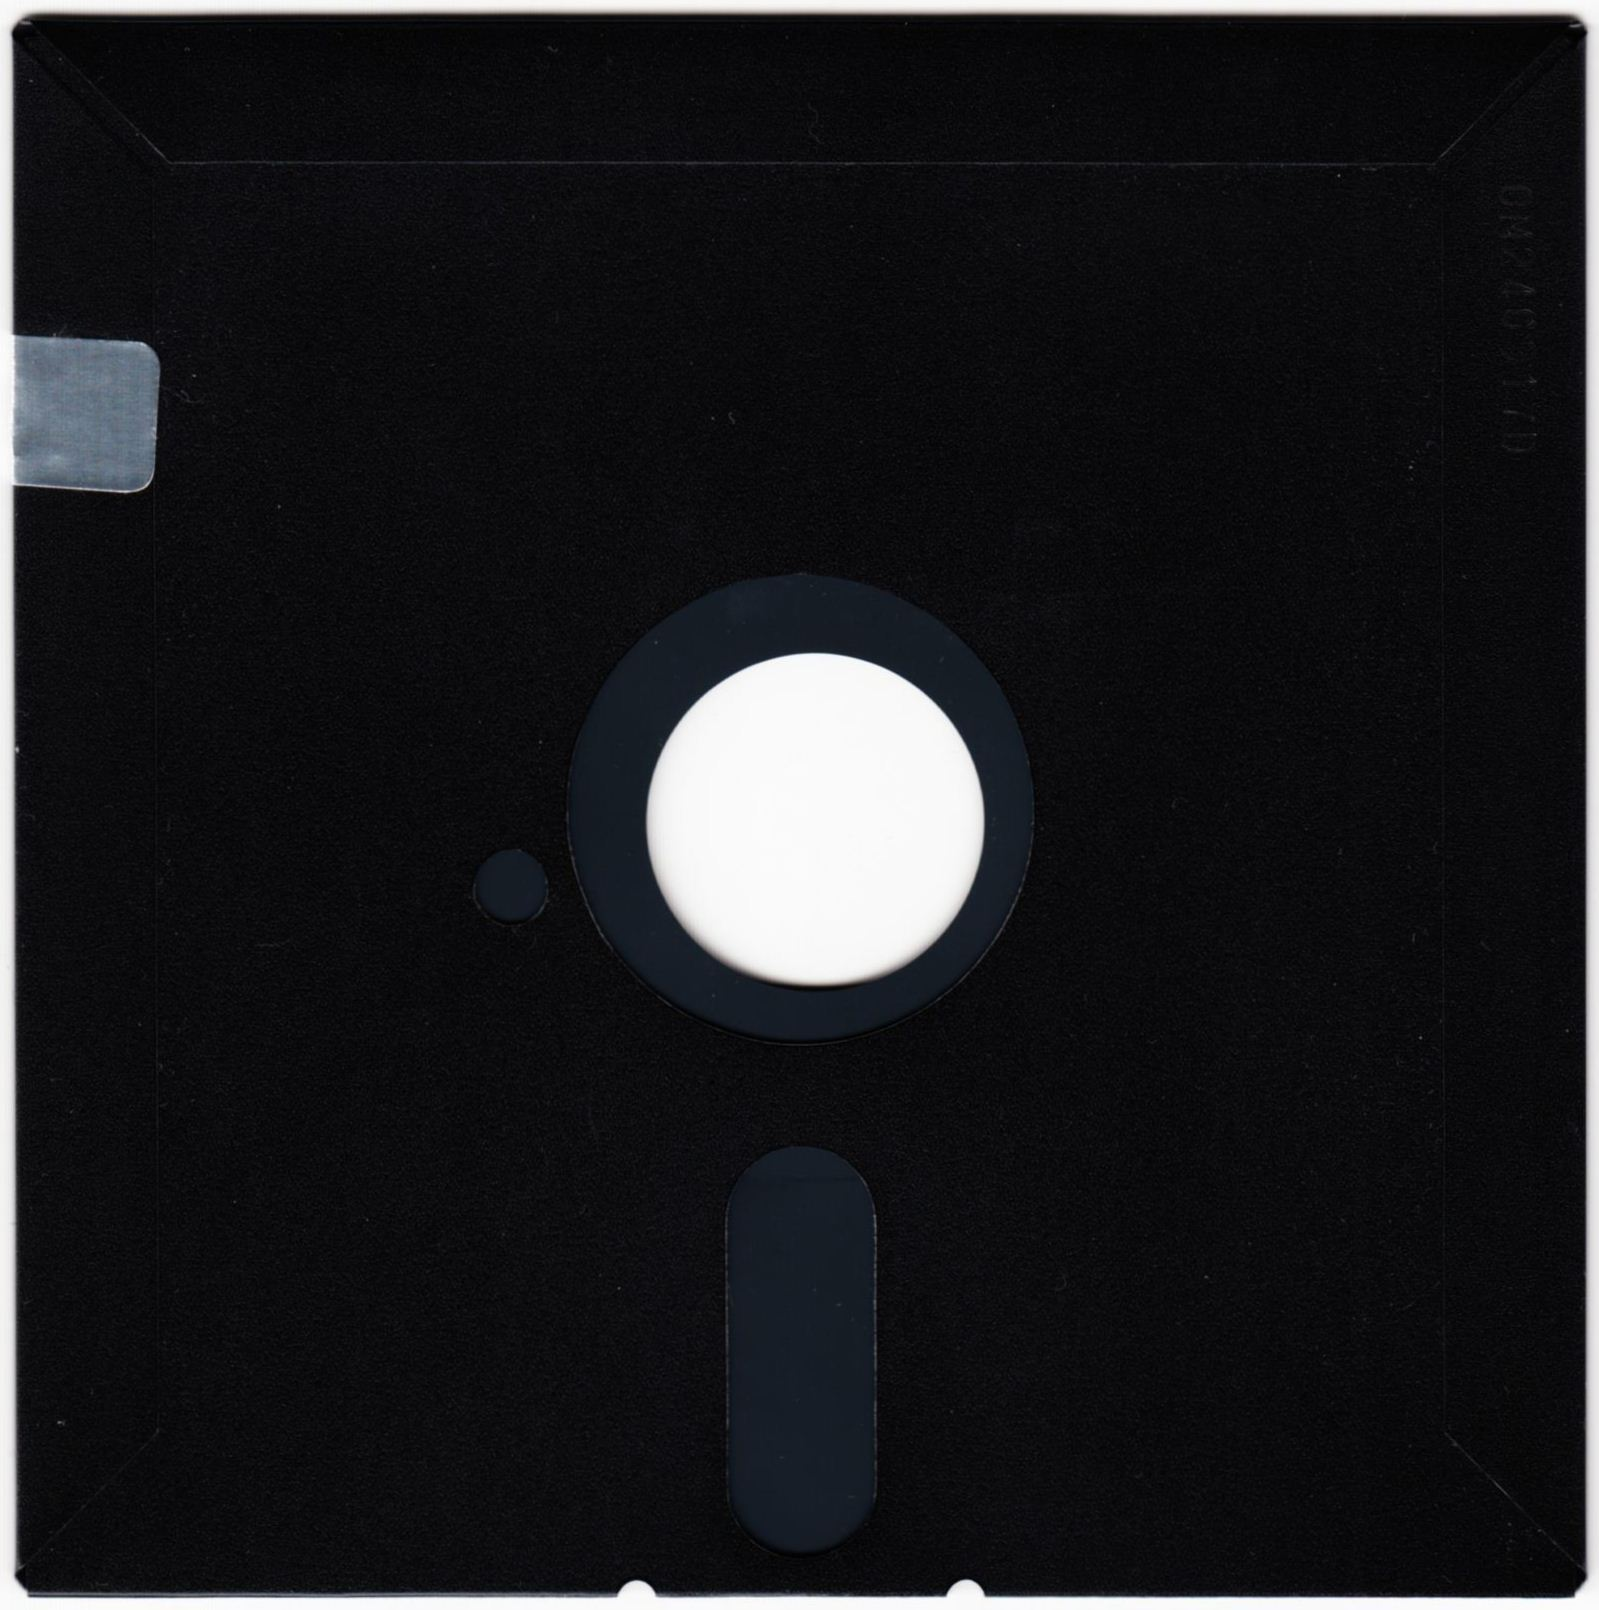 Game - Chaos Strikes Back - JP - PC-9801 - 5.25-inch - Game Disk - Back - Scan